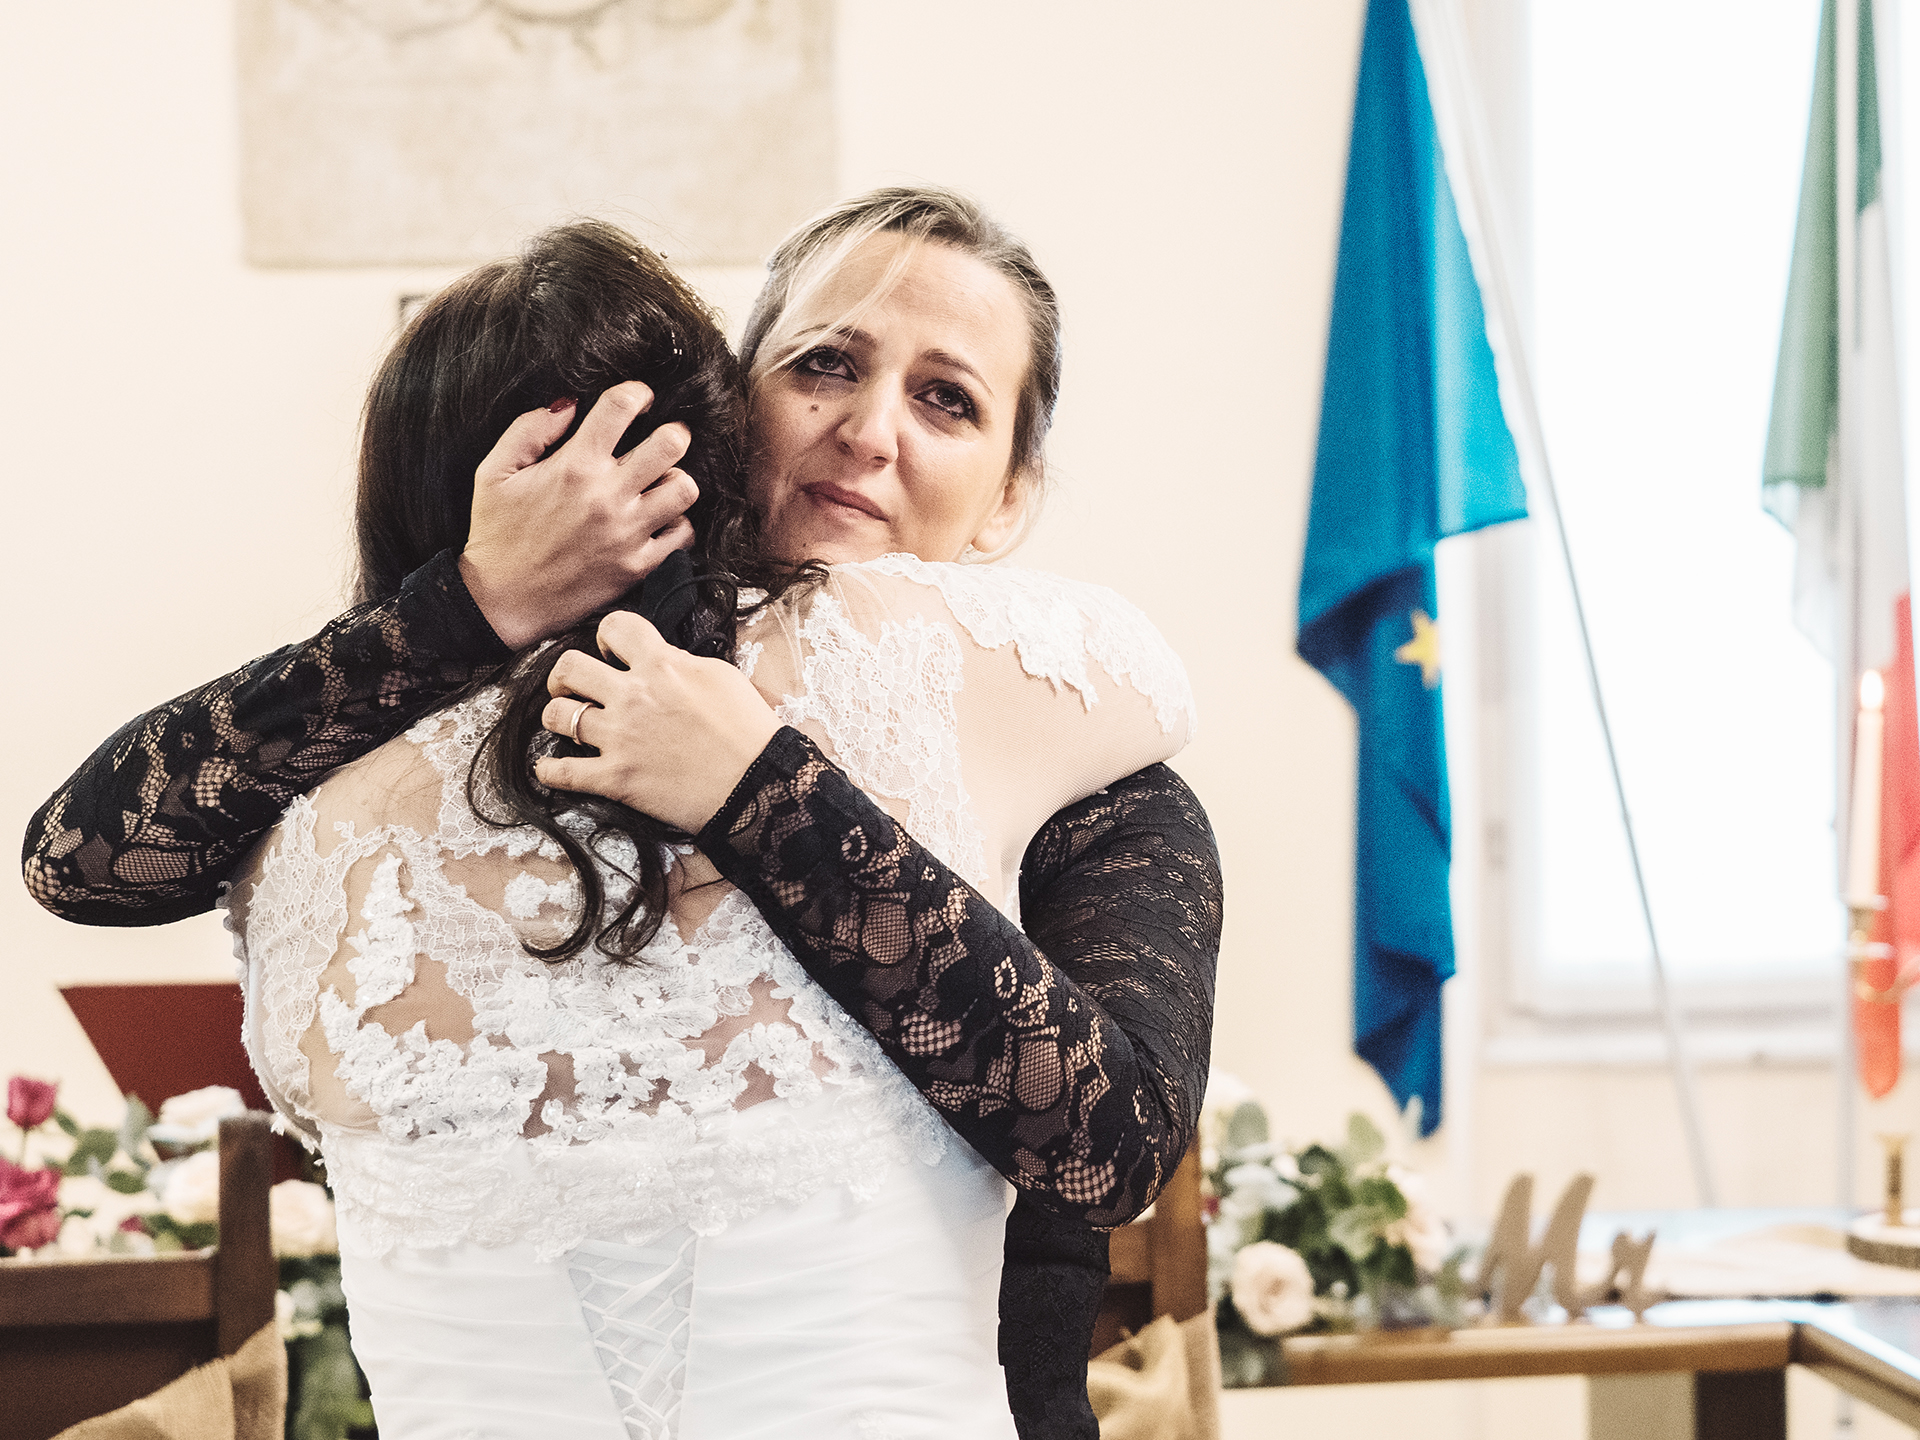 Italian Wedding Photographers | The bride's sister hugs her excitedly